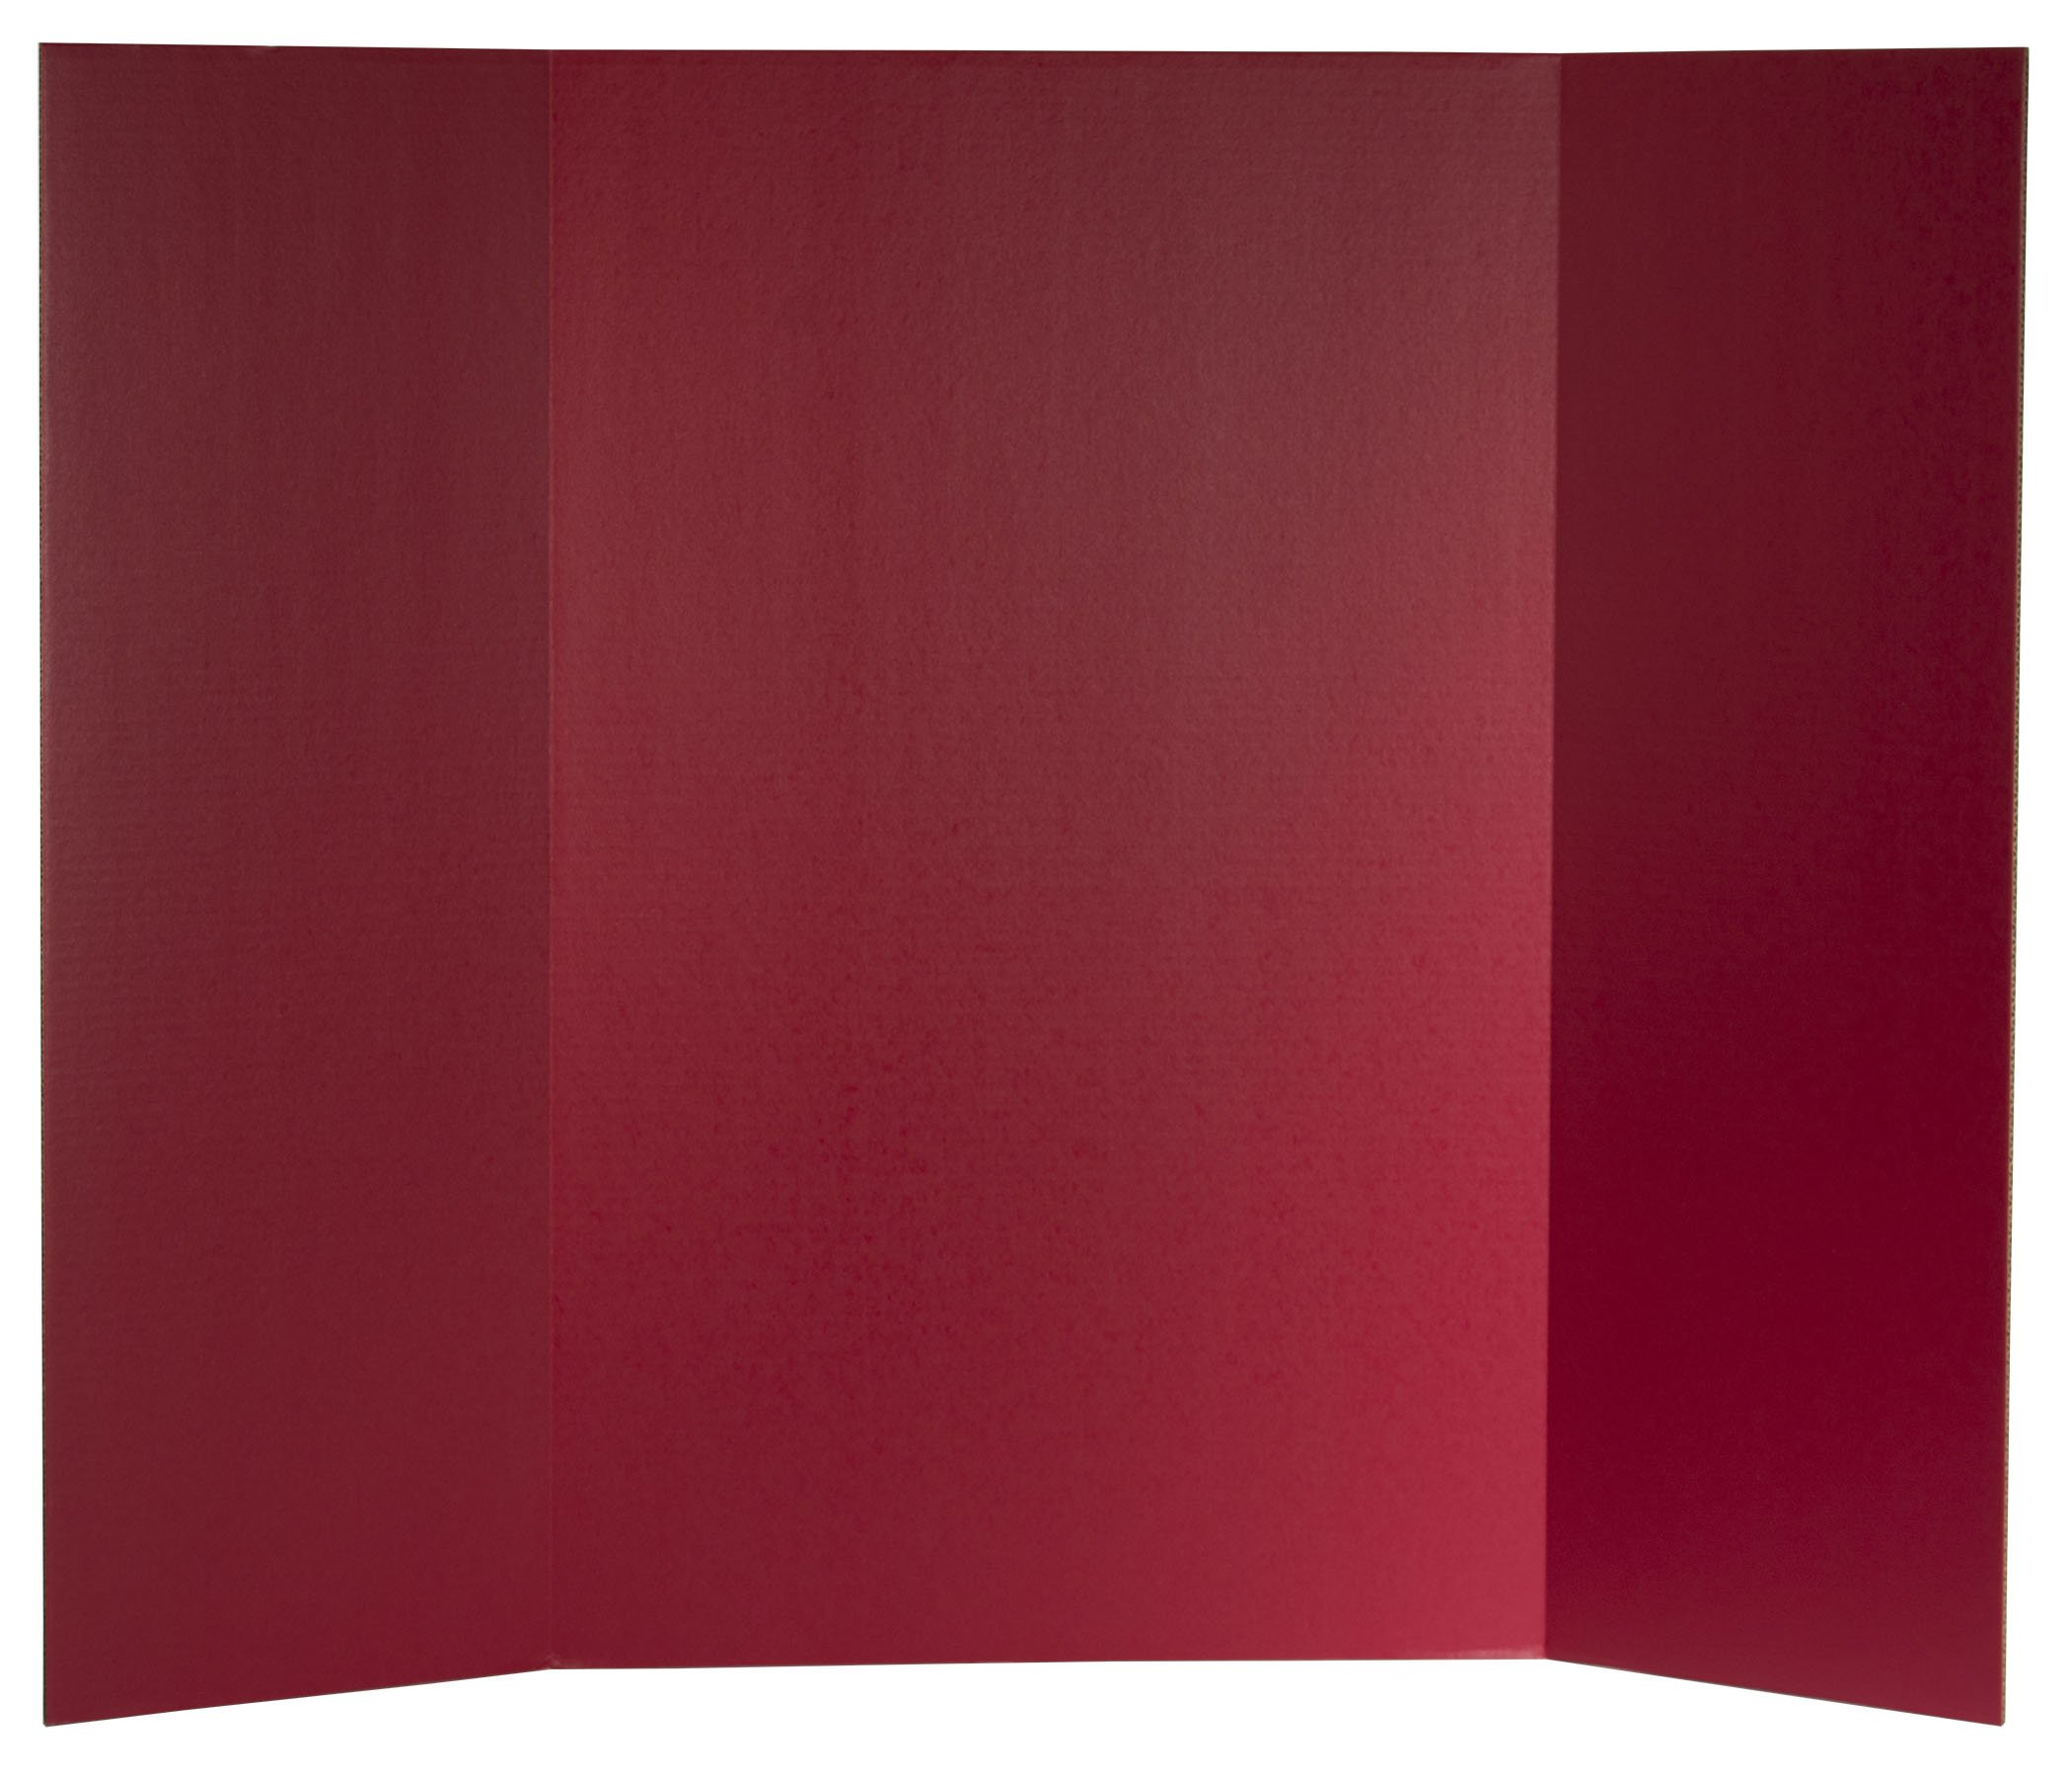 Flipside Products 30069 Project Display Board, Red (Pack of 24)